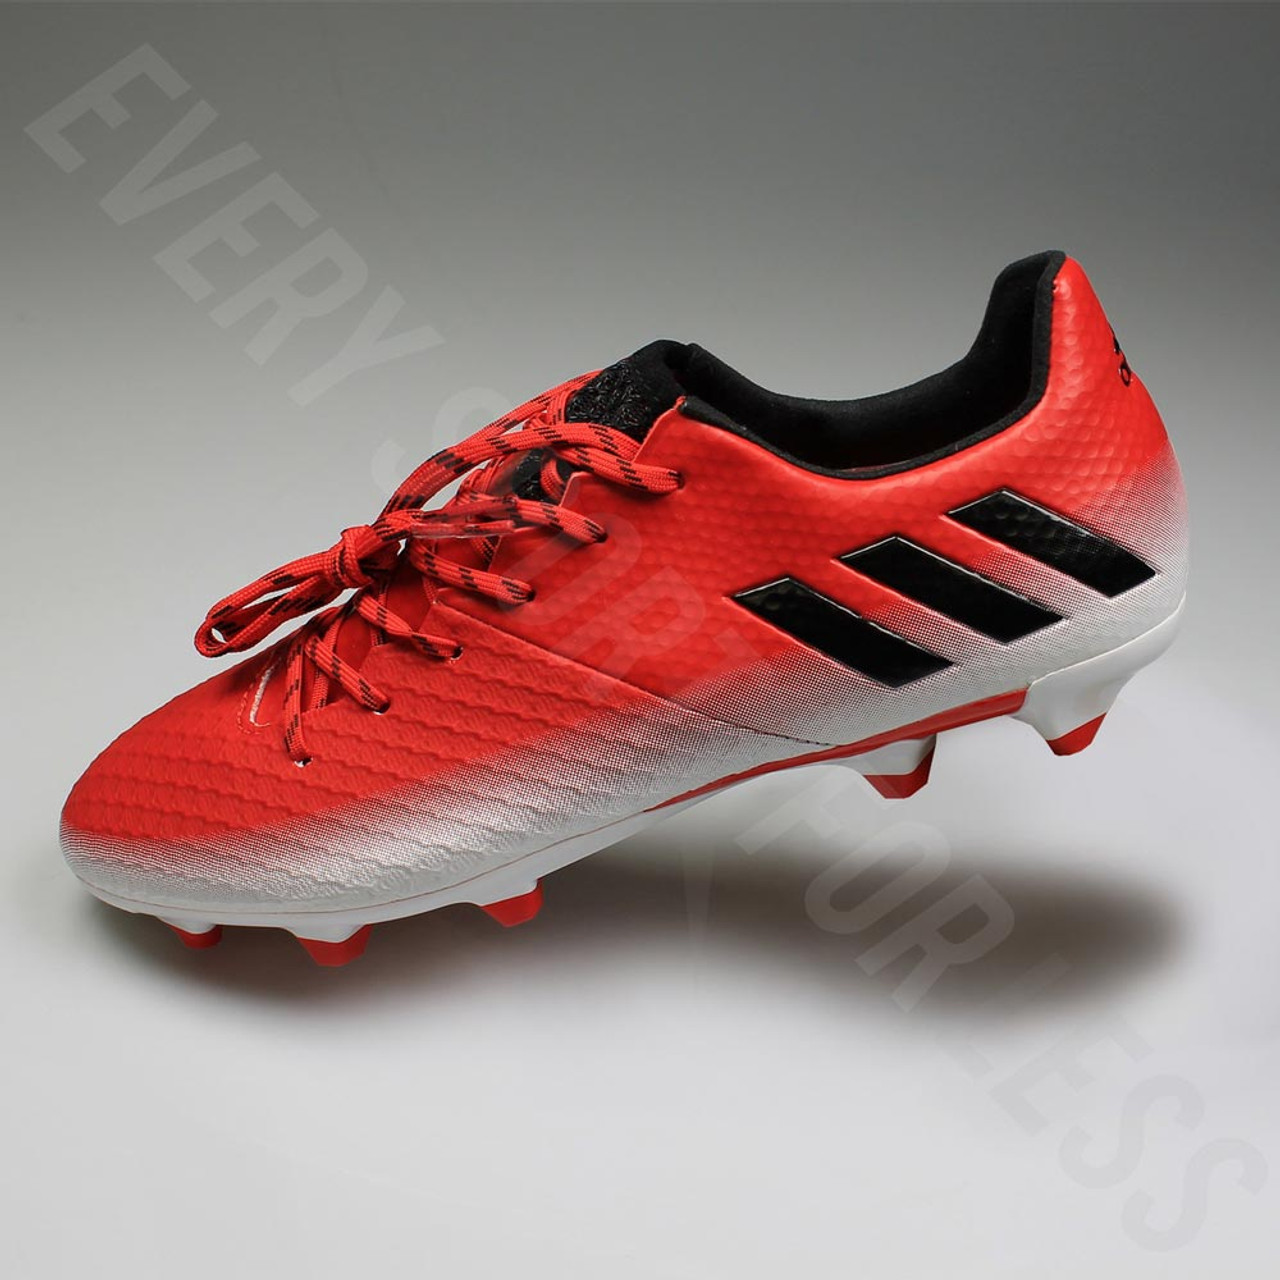 3ded6b8c6 ... Adidas Messi 16.2 FG Men s Soccer Cleats BA9144 - Red